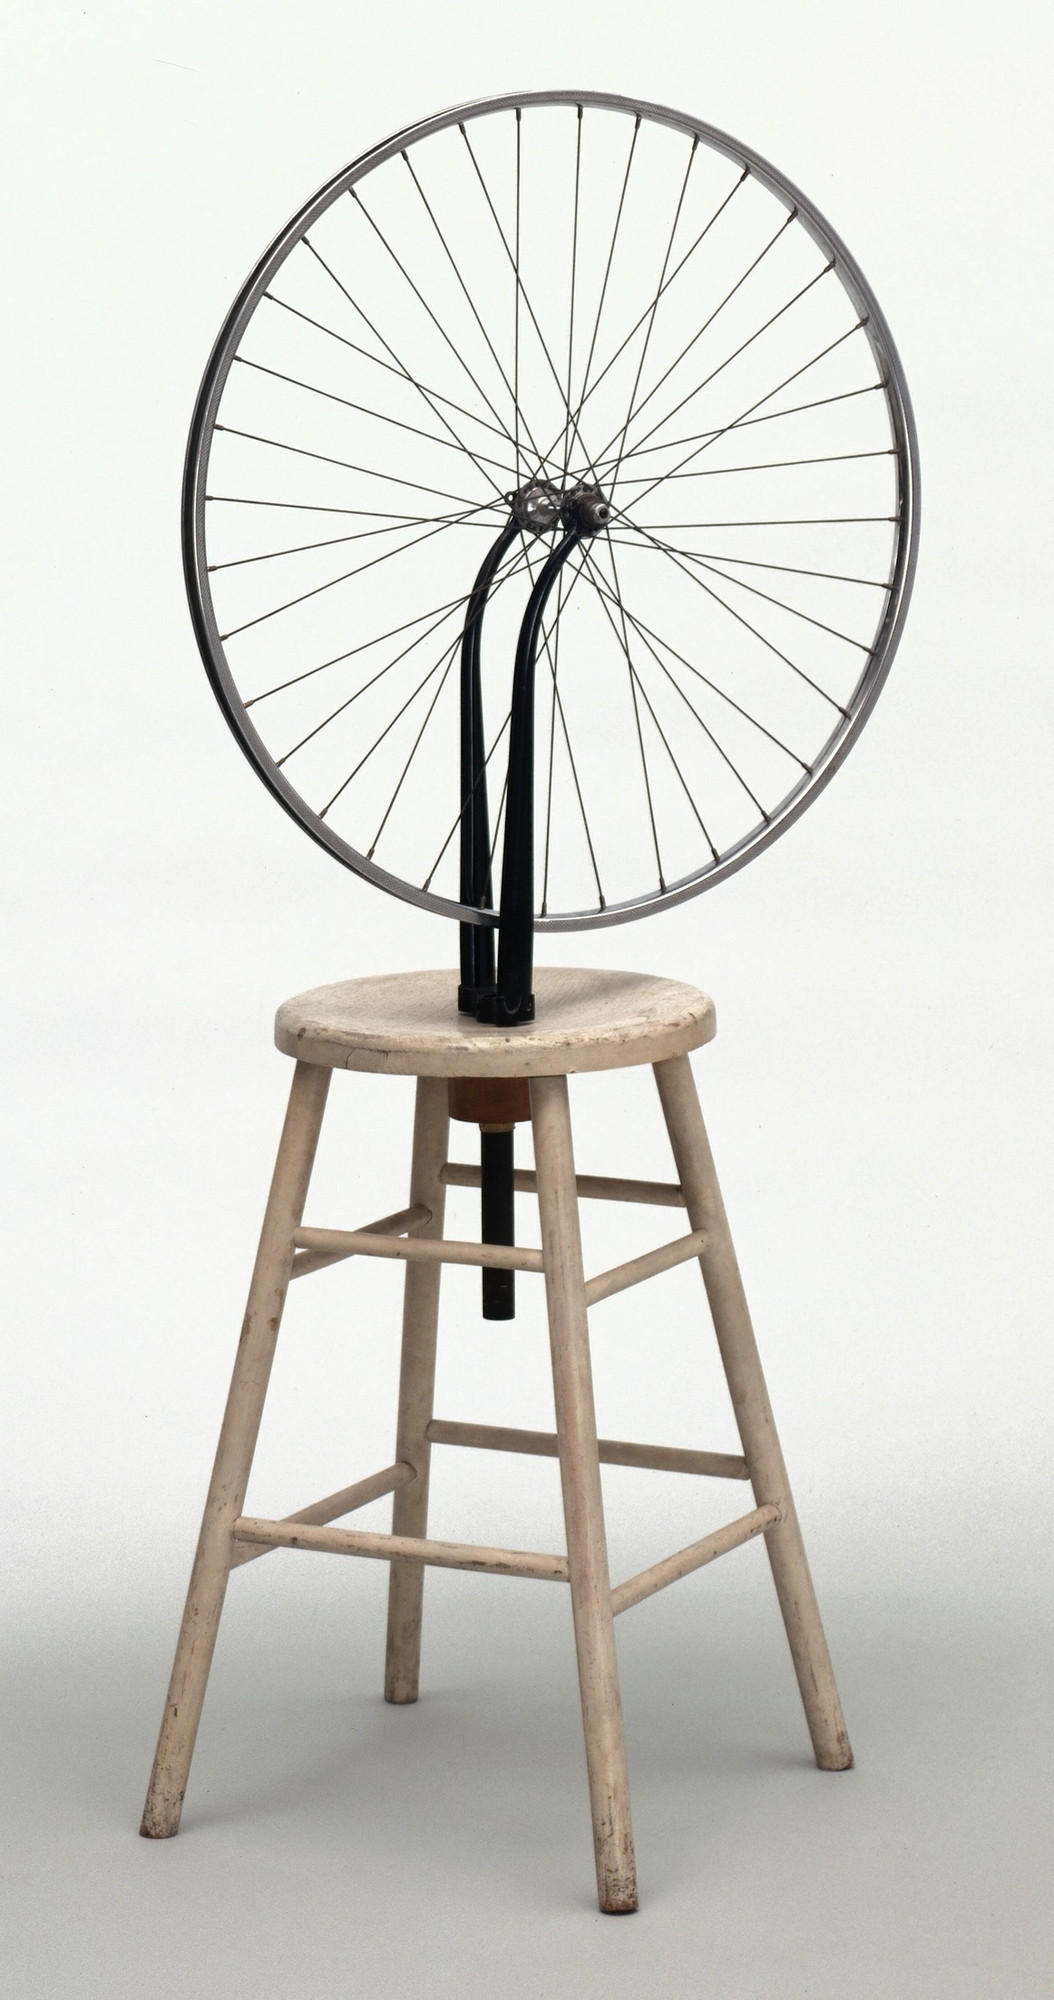 Marcel Duchamp. Bicycle Wheel. New York, 1951 (third version, after lost original of 1913)